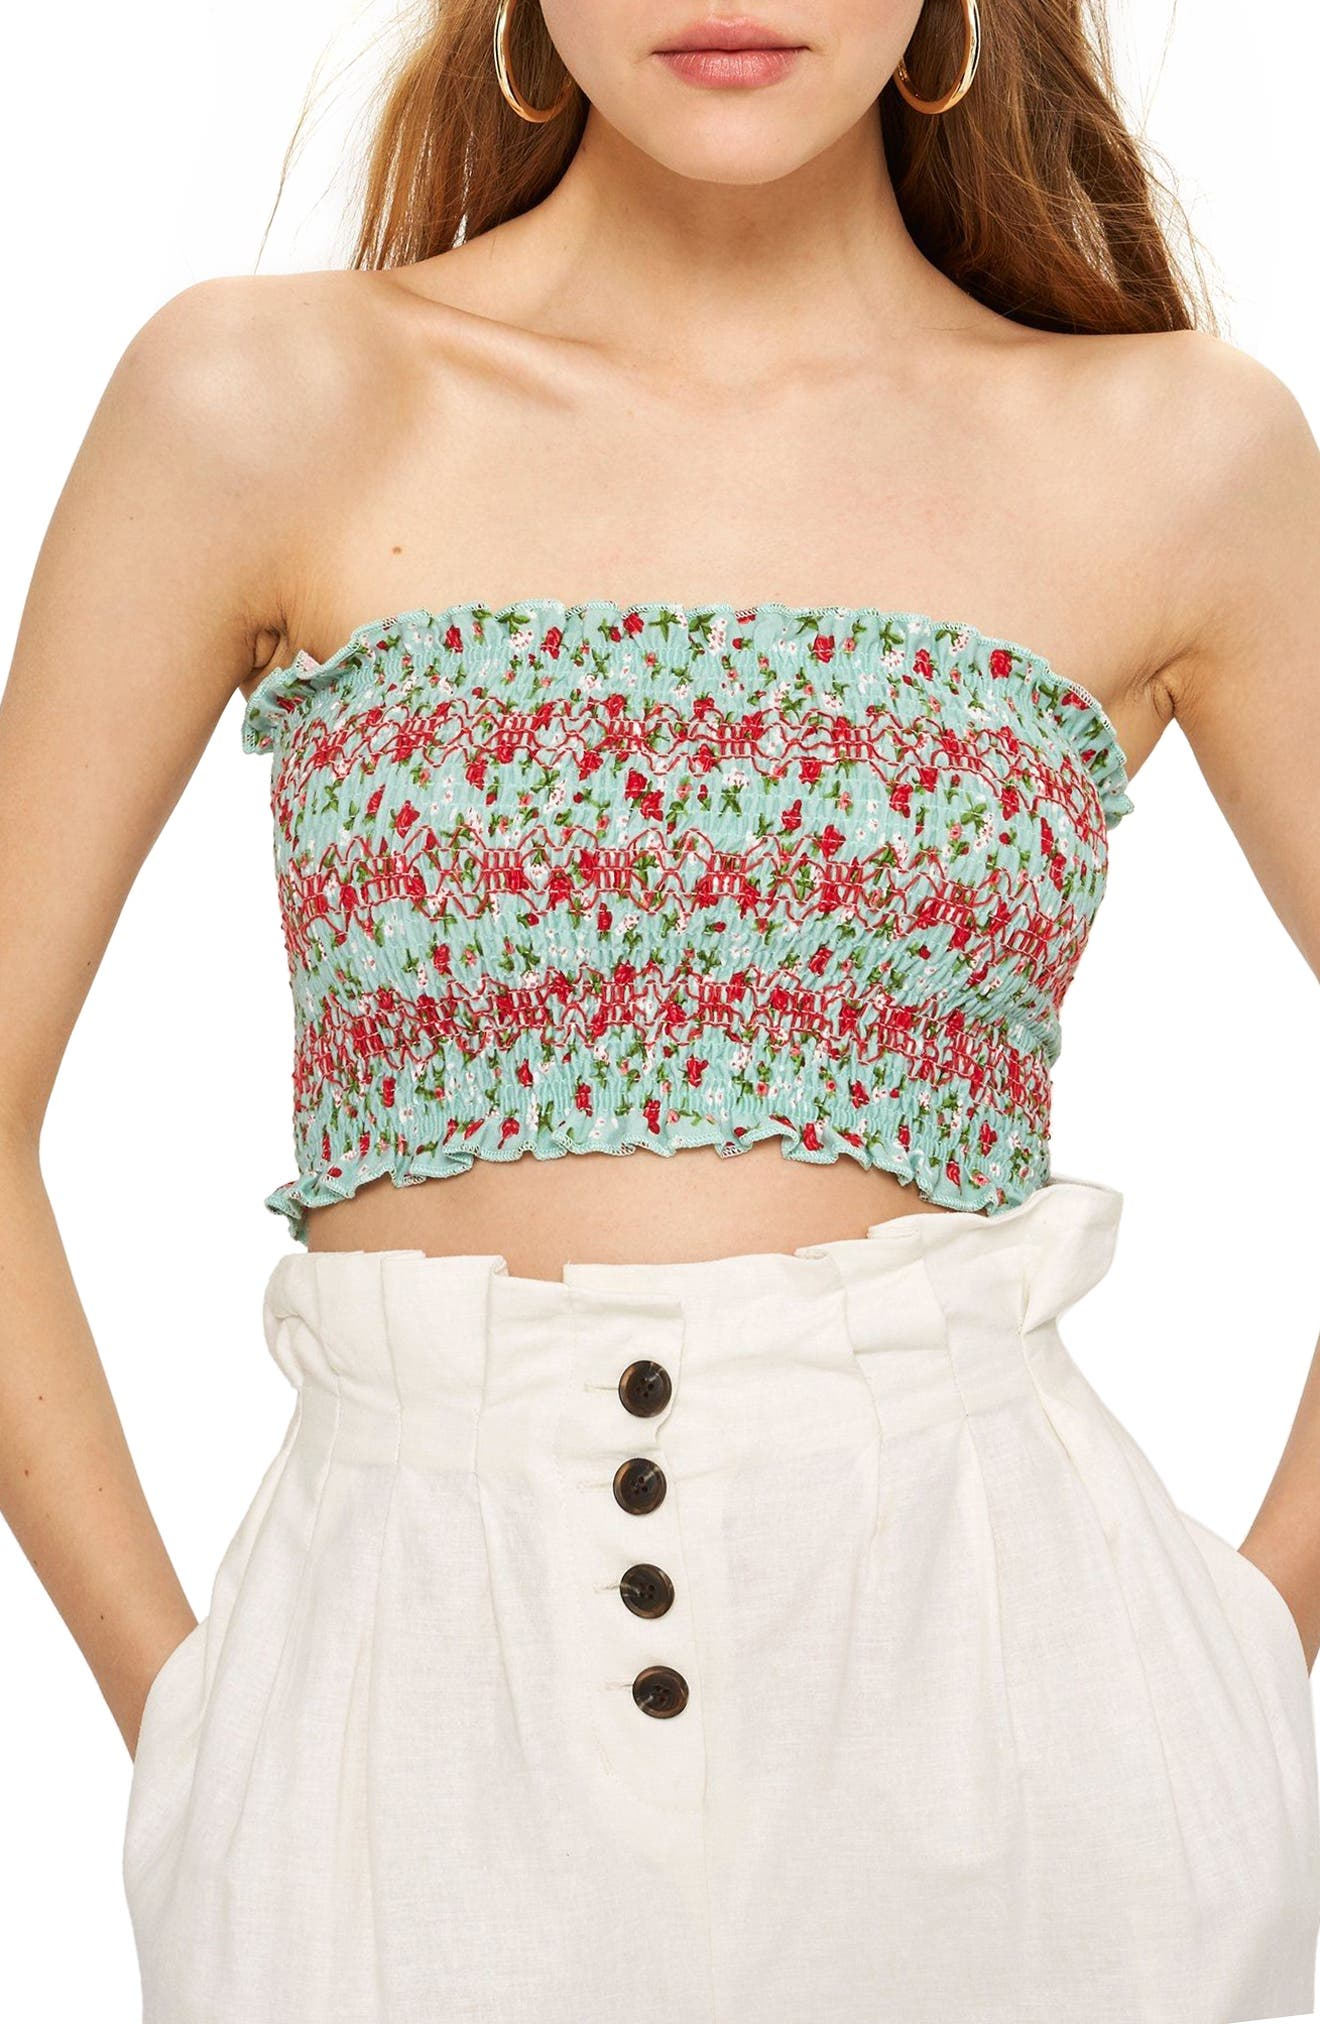 Floral Print Tube Top,                         Main,                         color, Green Multi